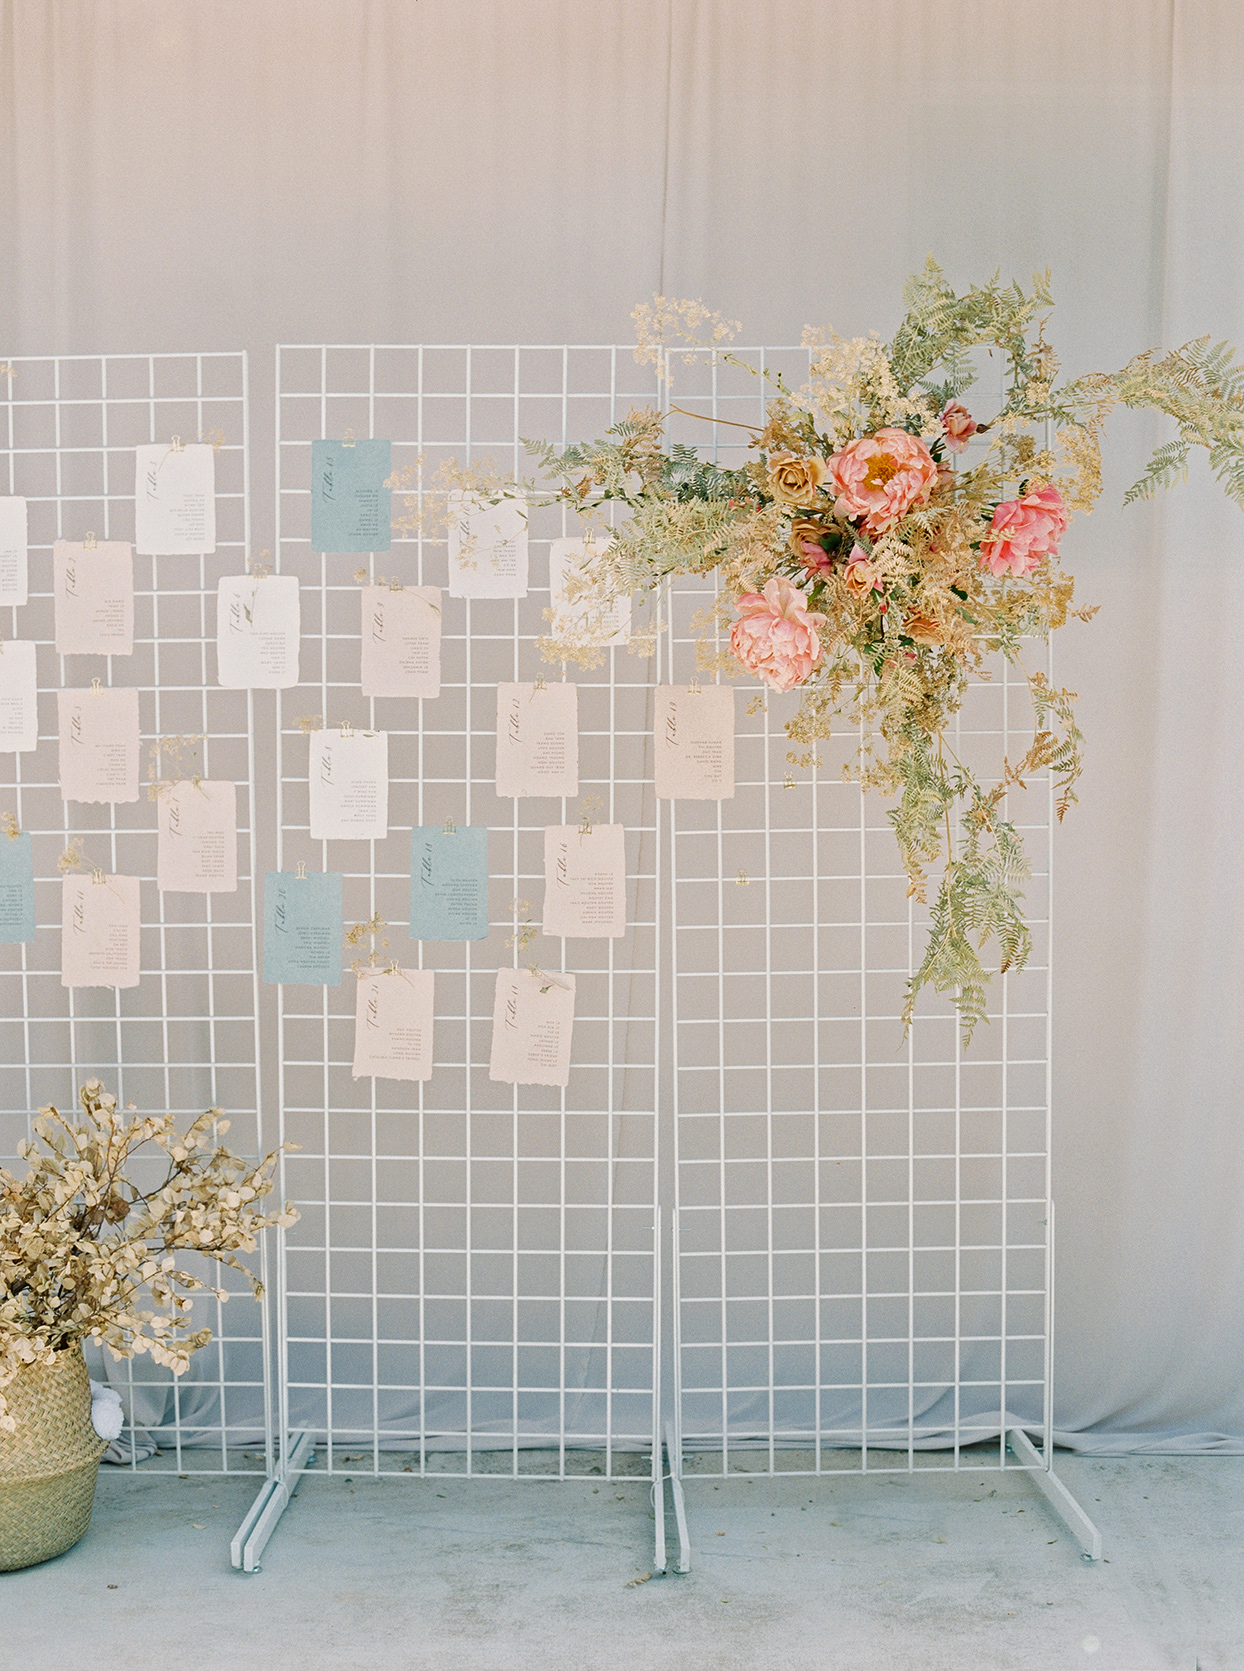 thuy kahn wedding seating chart on wire rack